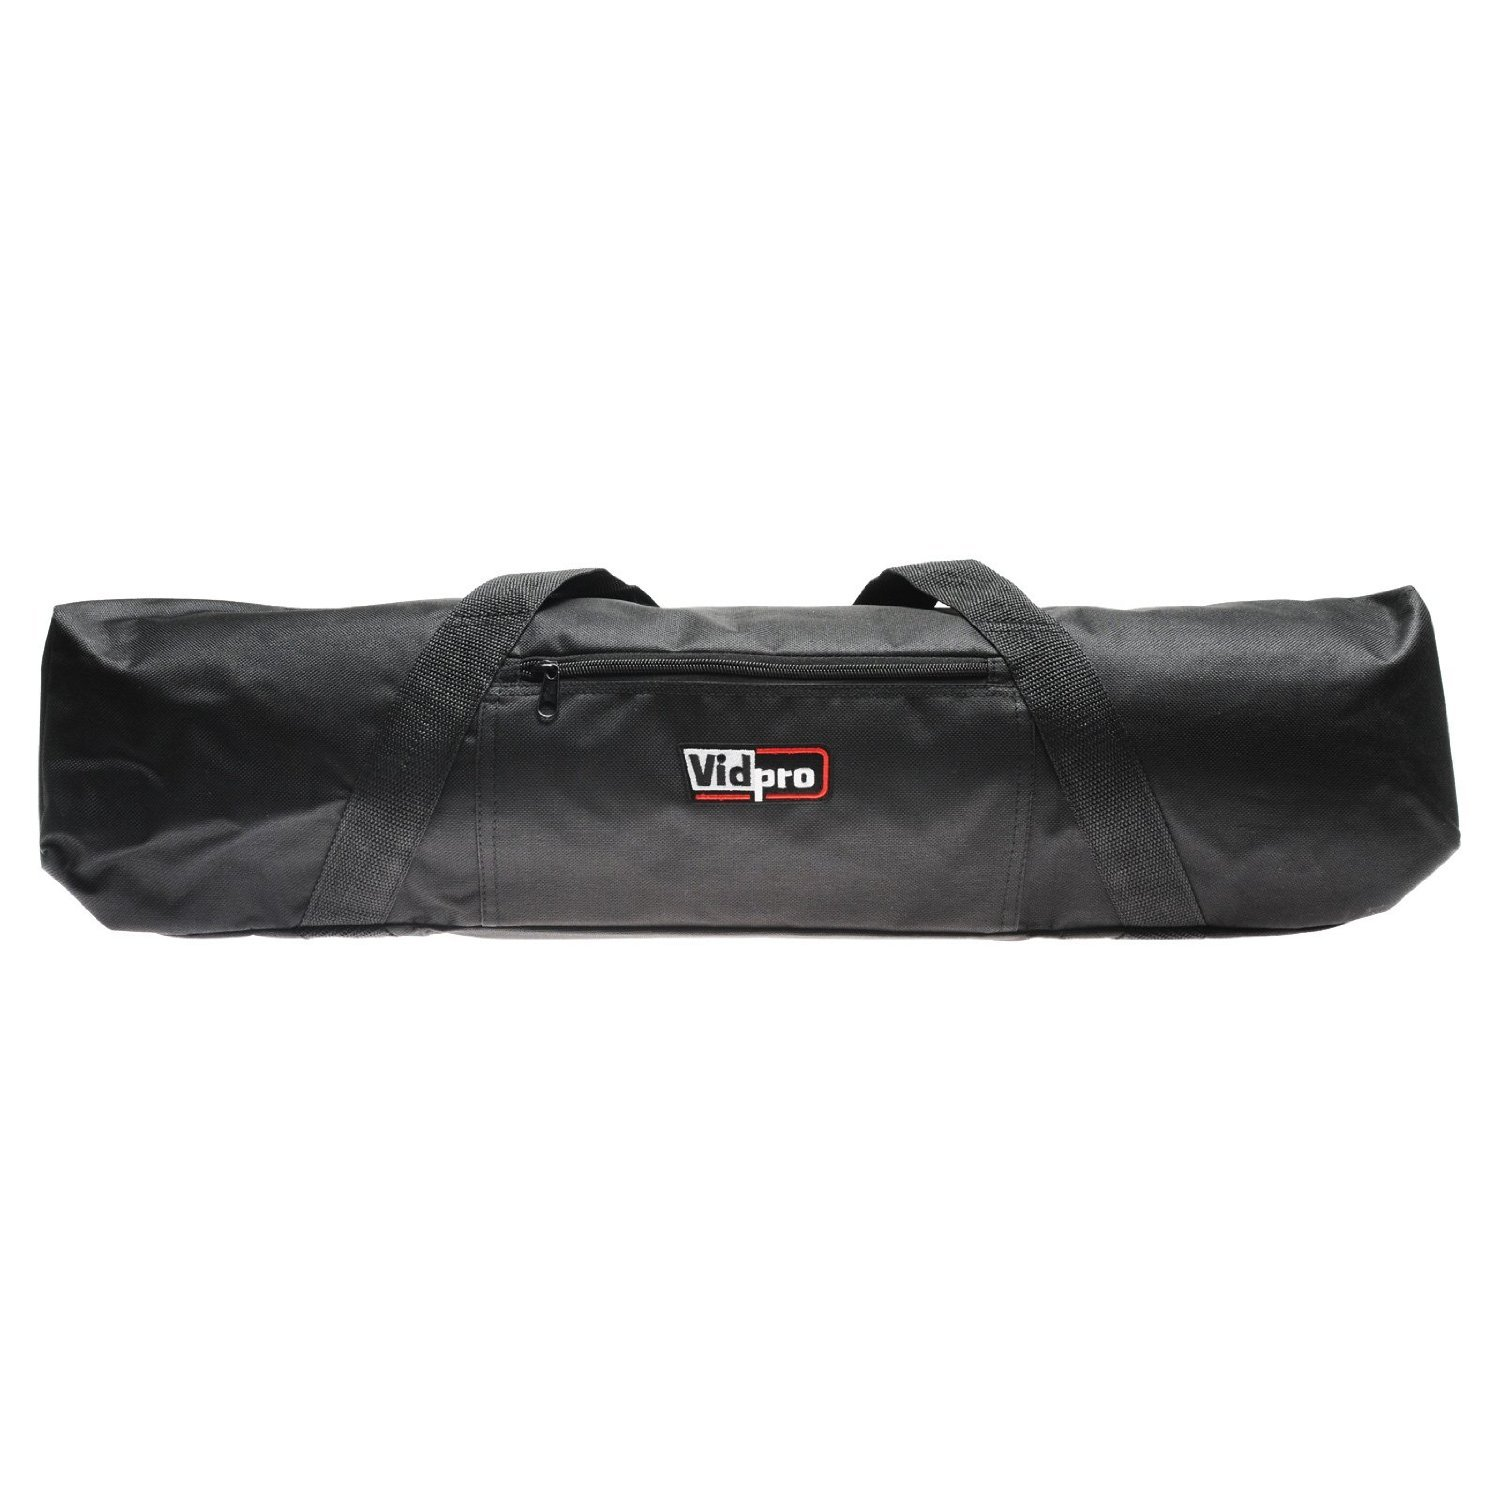 VidPro TC-45 Tripod Carrying Case 45'' Long with Shoulder Strap and Carry Handle for Bogen-Manfrotto, Sunpak, Vanguard, Slik, Giottos and Gitzo Tripods and Light Stands by VidPro